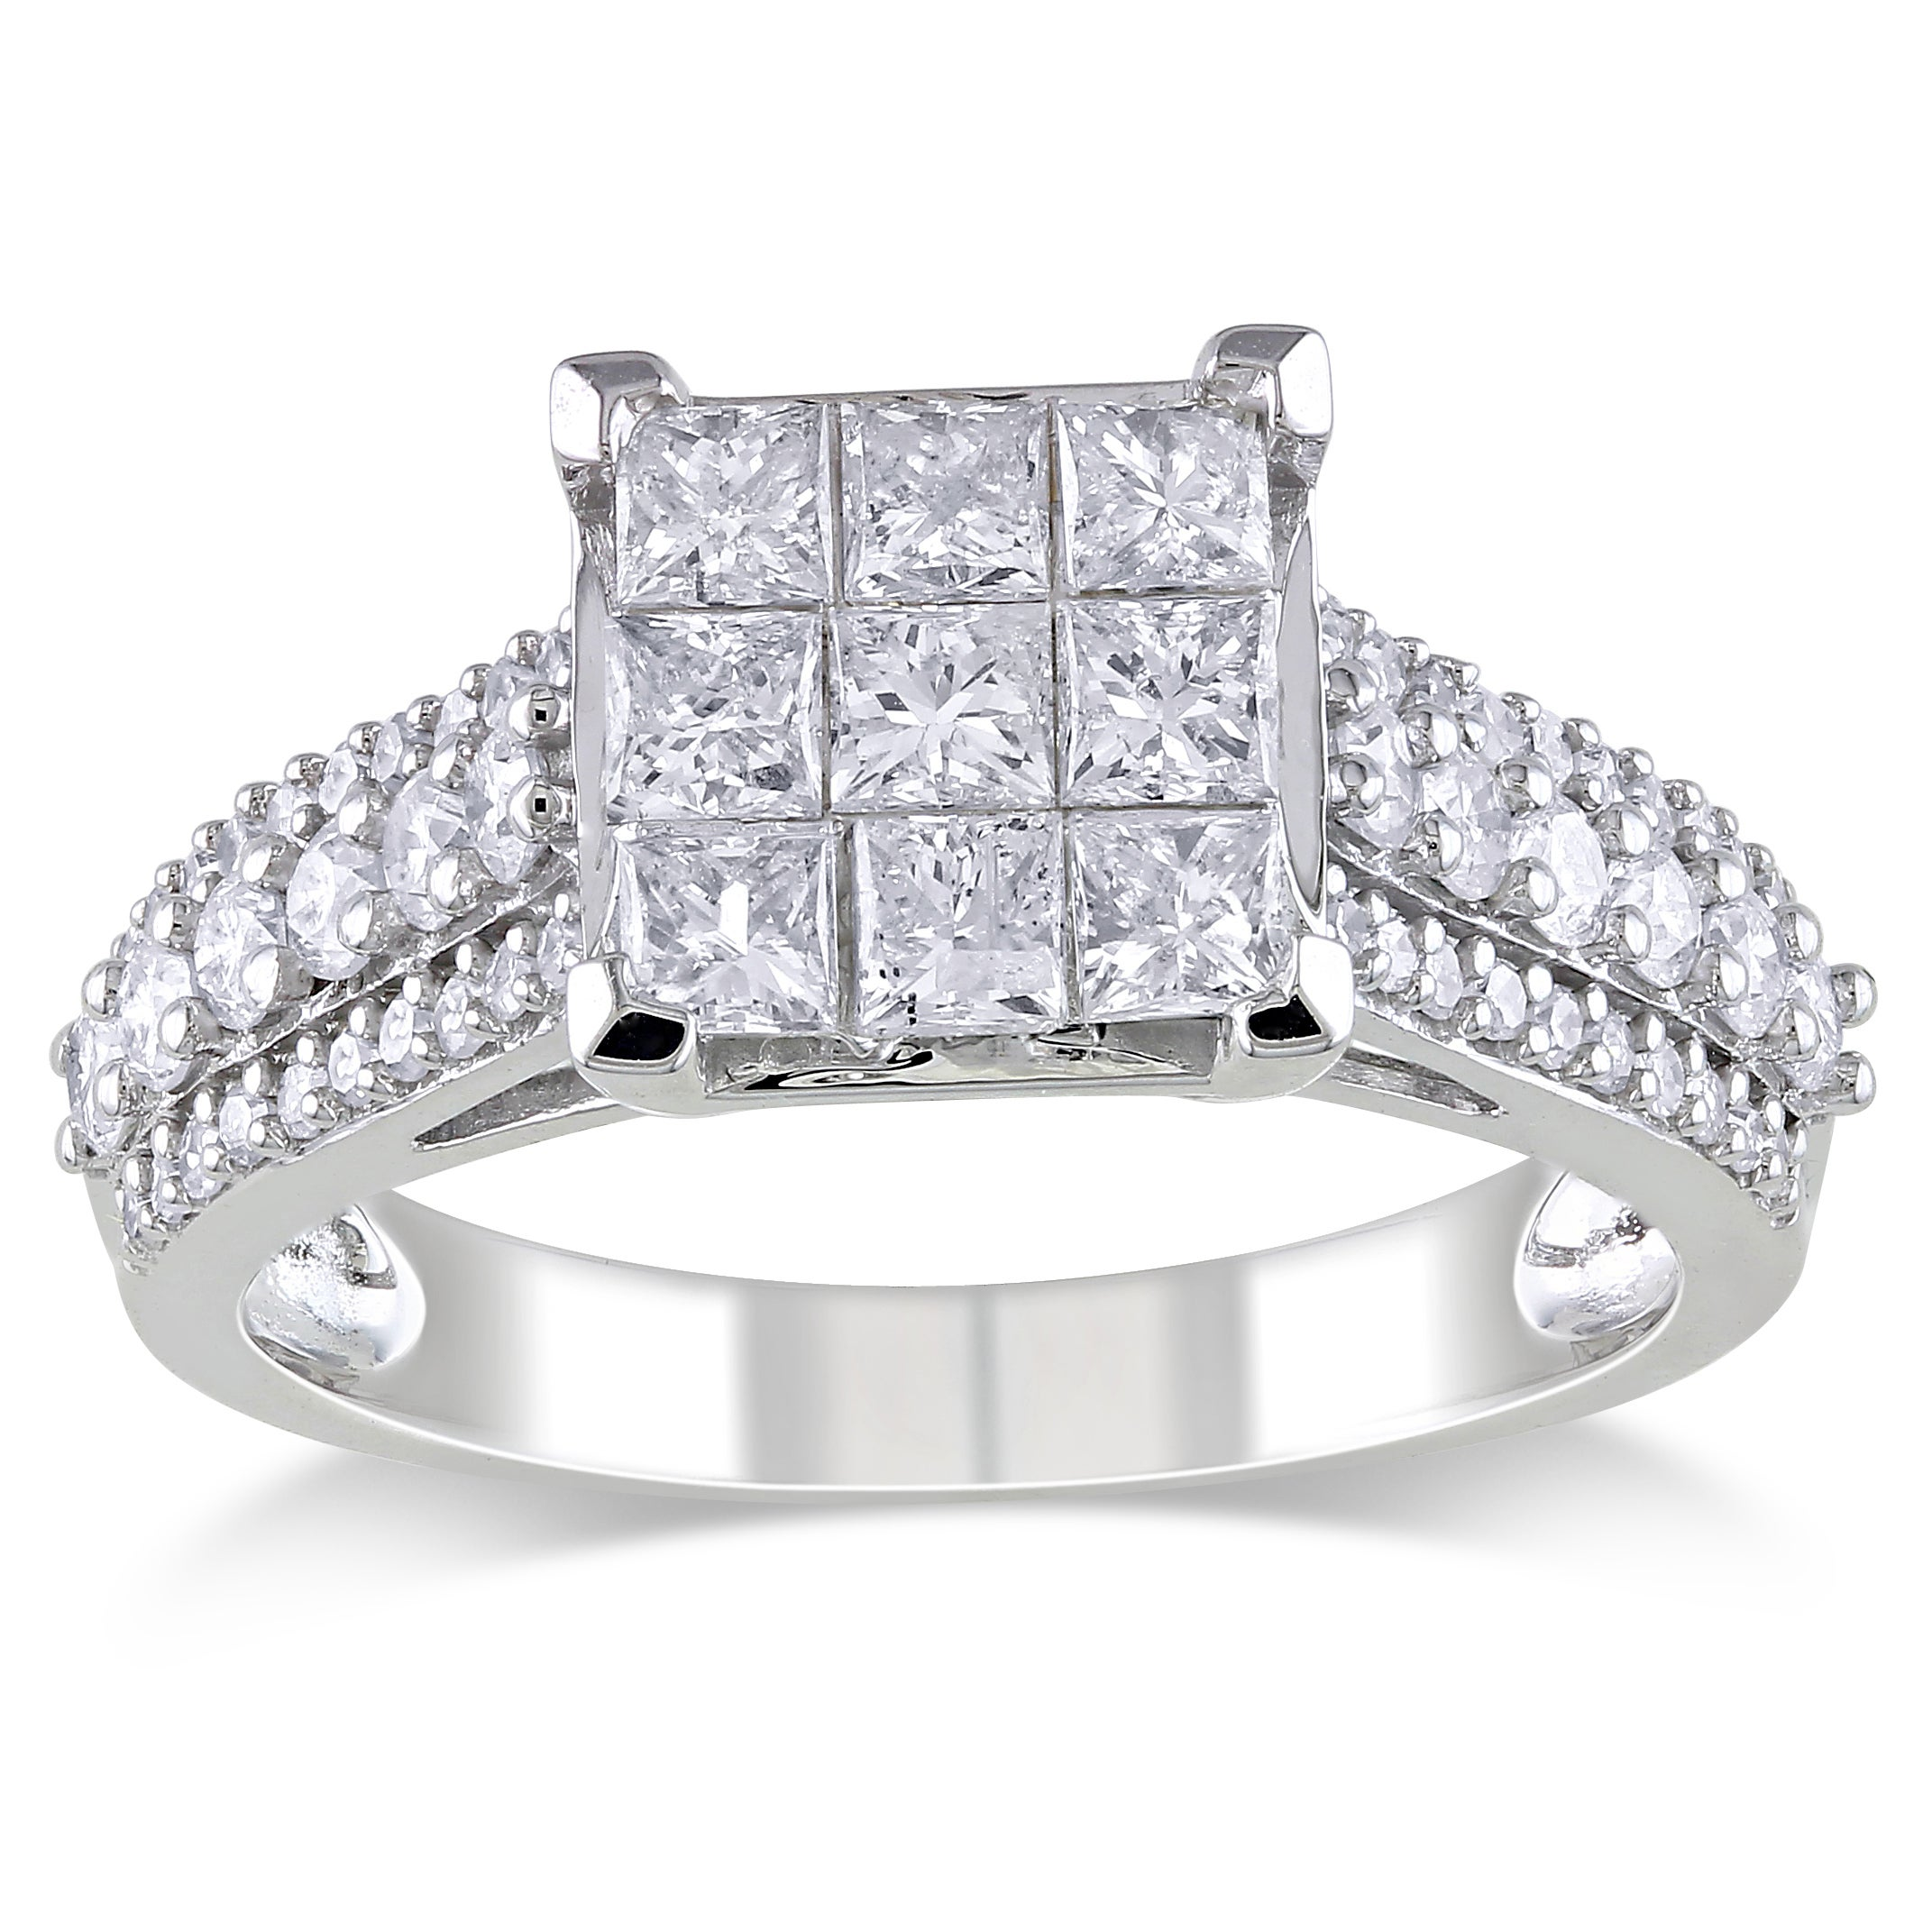 Miadora 10k White Gold 1 1/2ct TDW Diamond Engagement Ring (H-I, I2-I3)